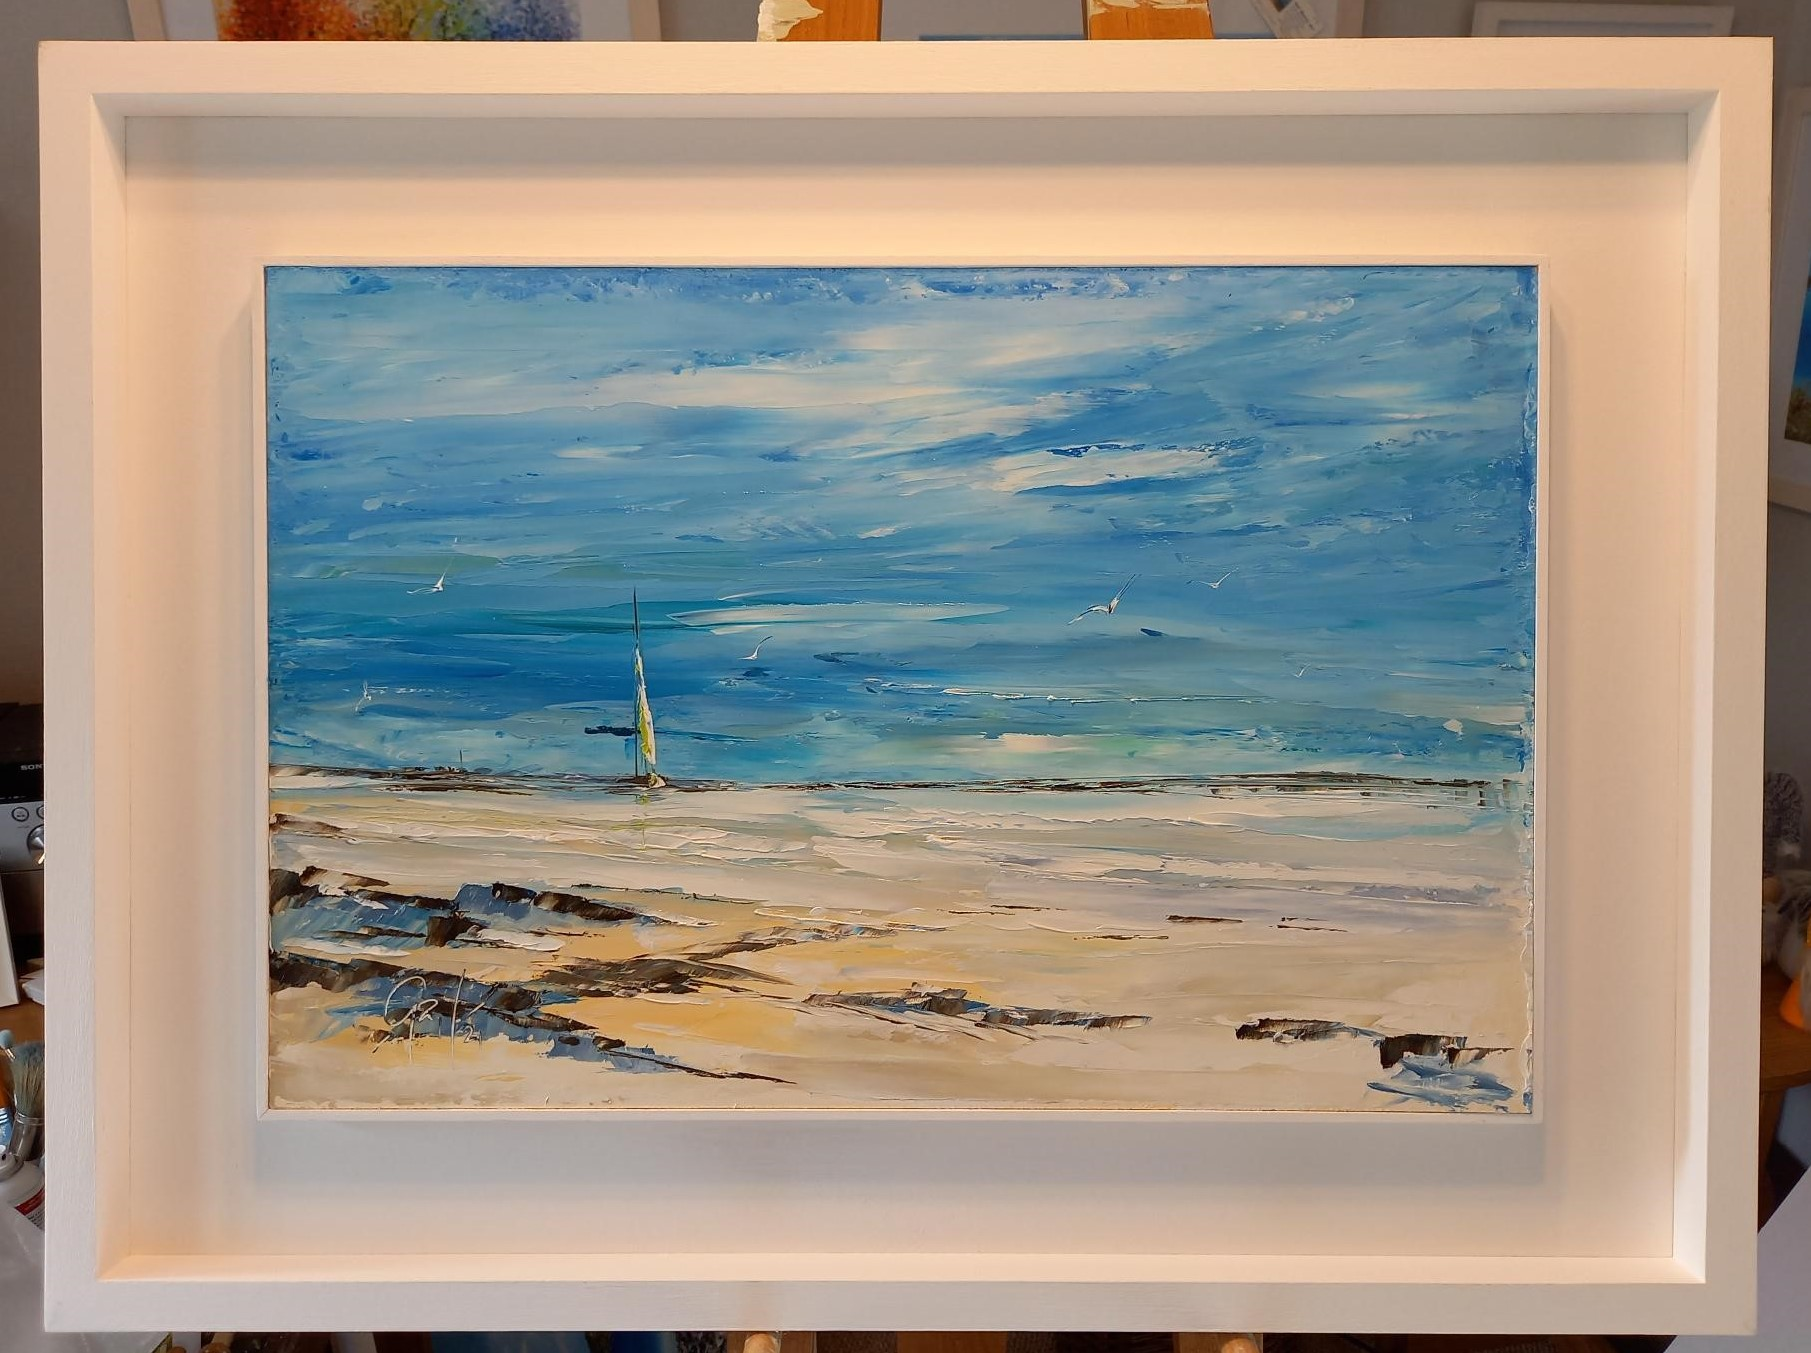 'Sailing Days' - New original oil painting just released 25.5.21 £345